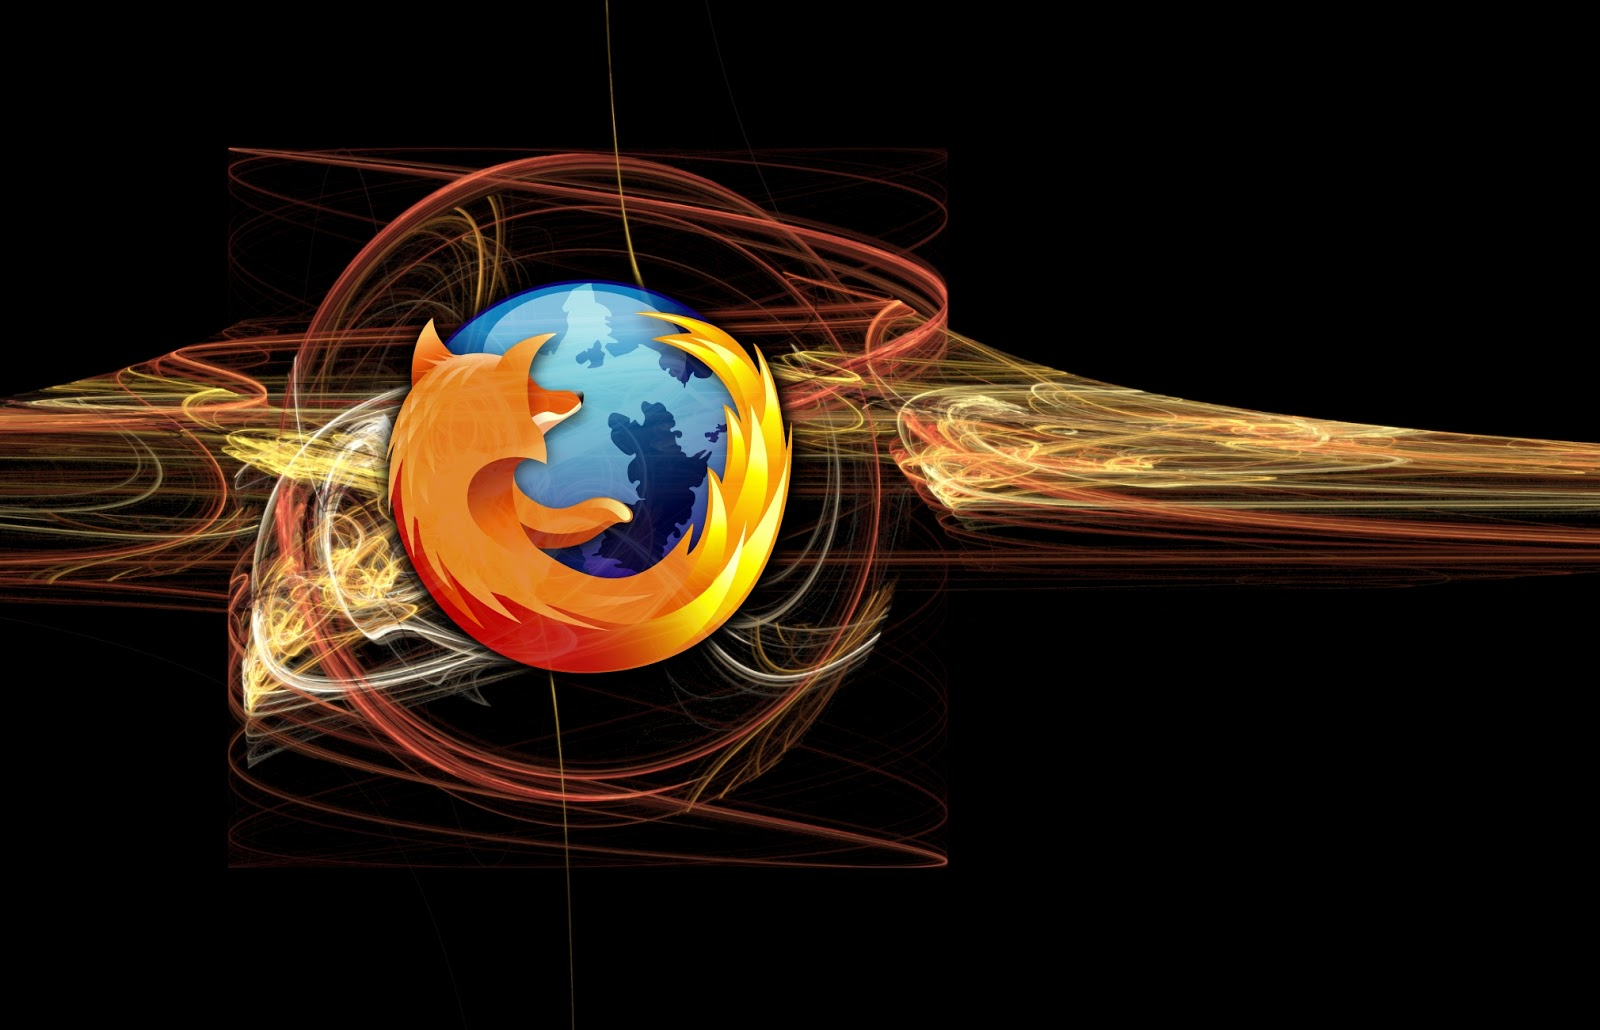 best 7 mozilla firefox wallpaper download